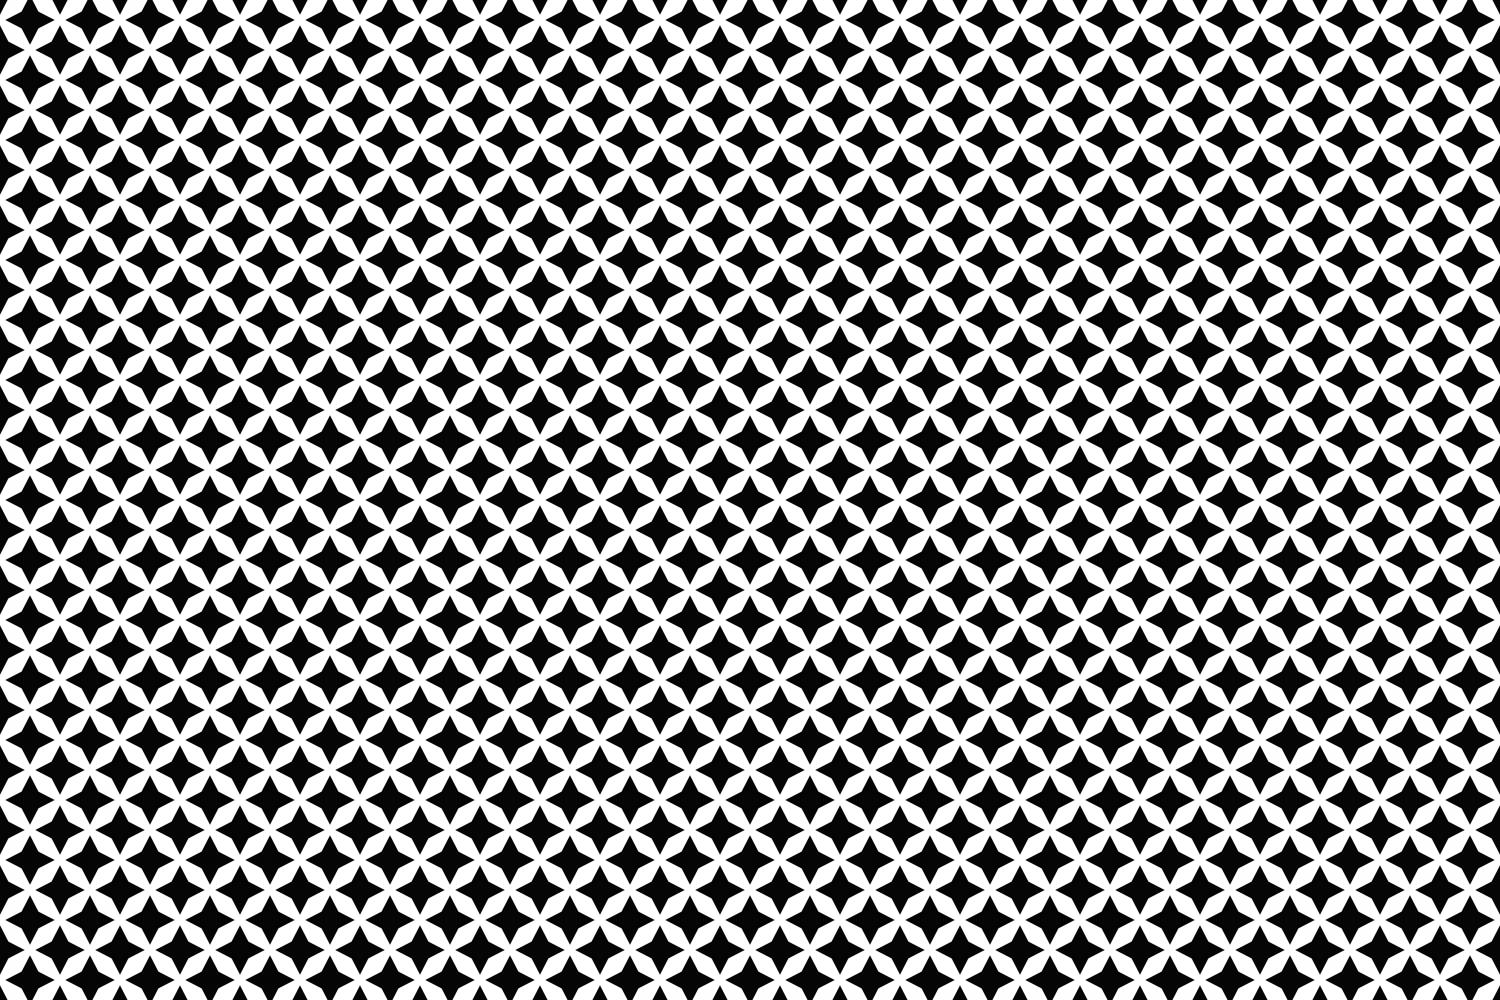 Download Free Seamless Black And White Pattern Graphic By Davidzydd Creative for Cricut Explore, Silhouette and other cutting machines.